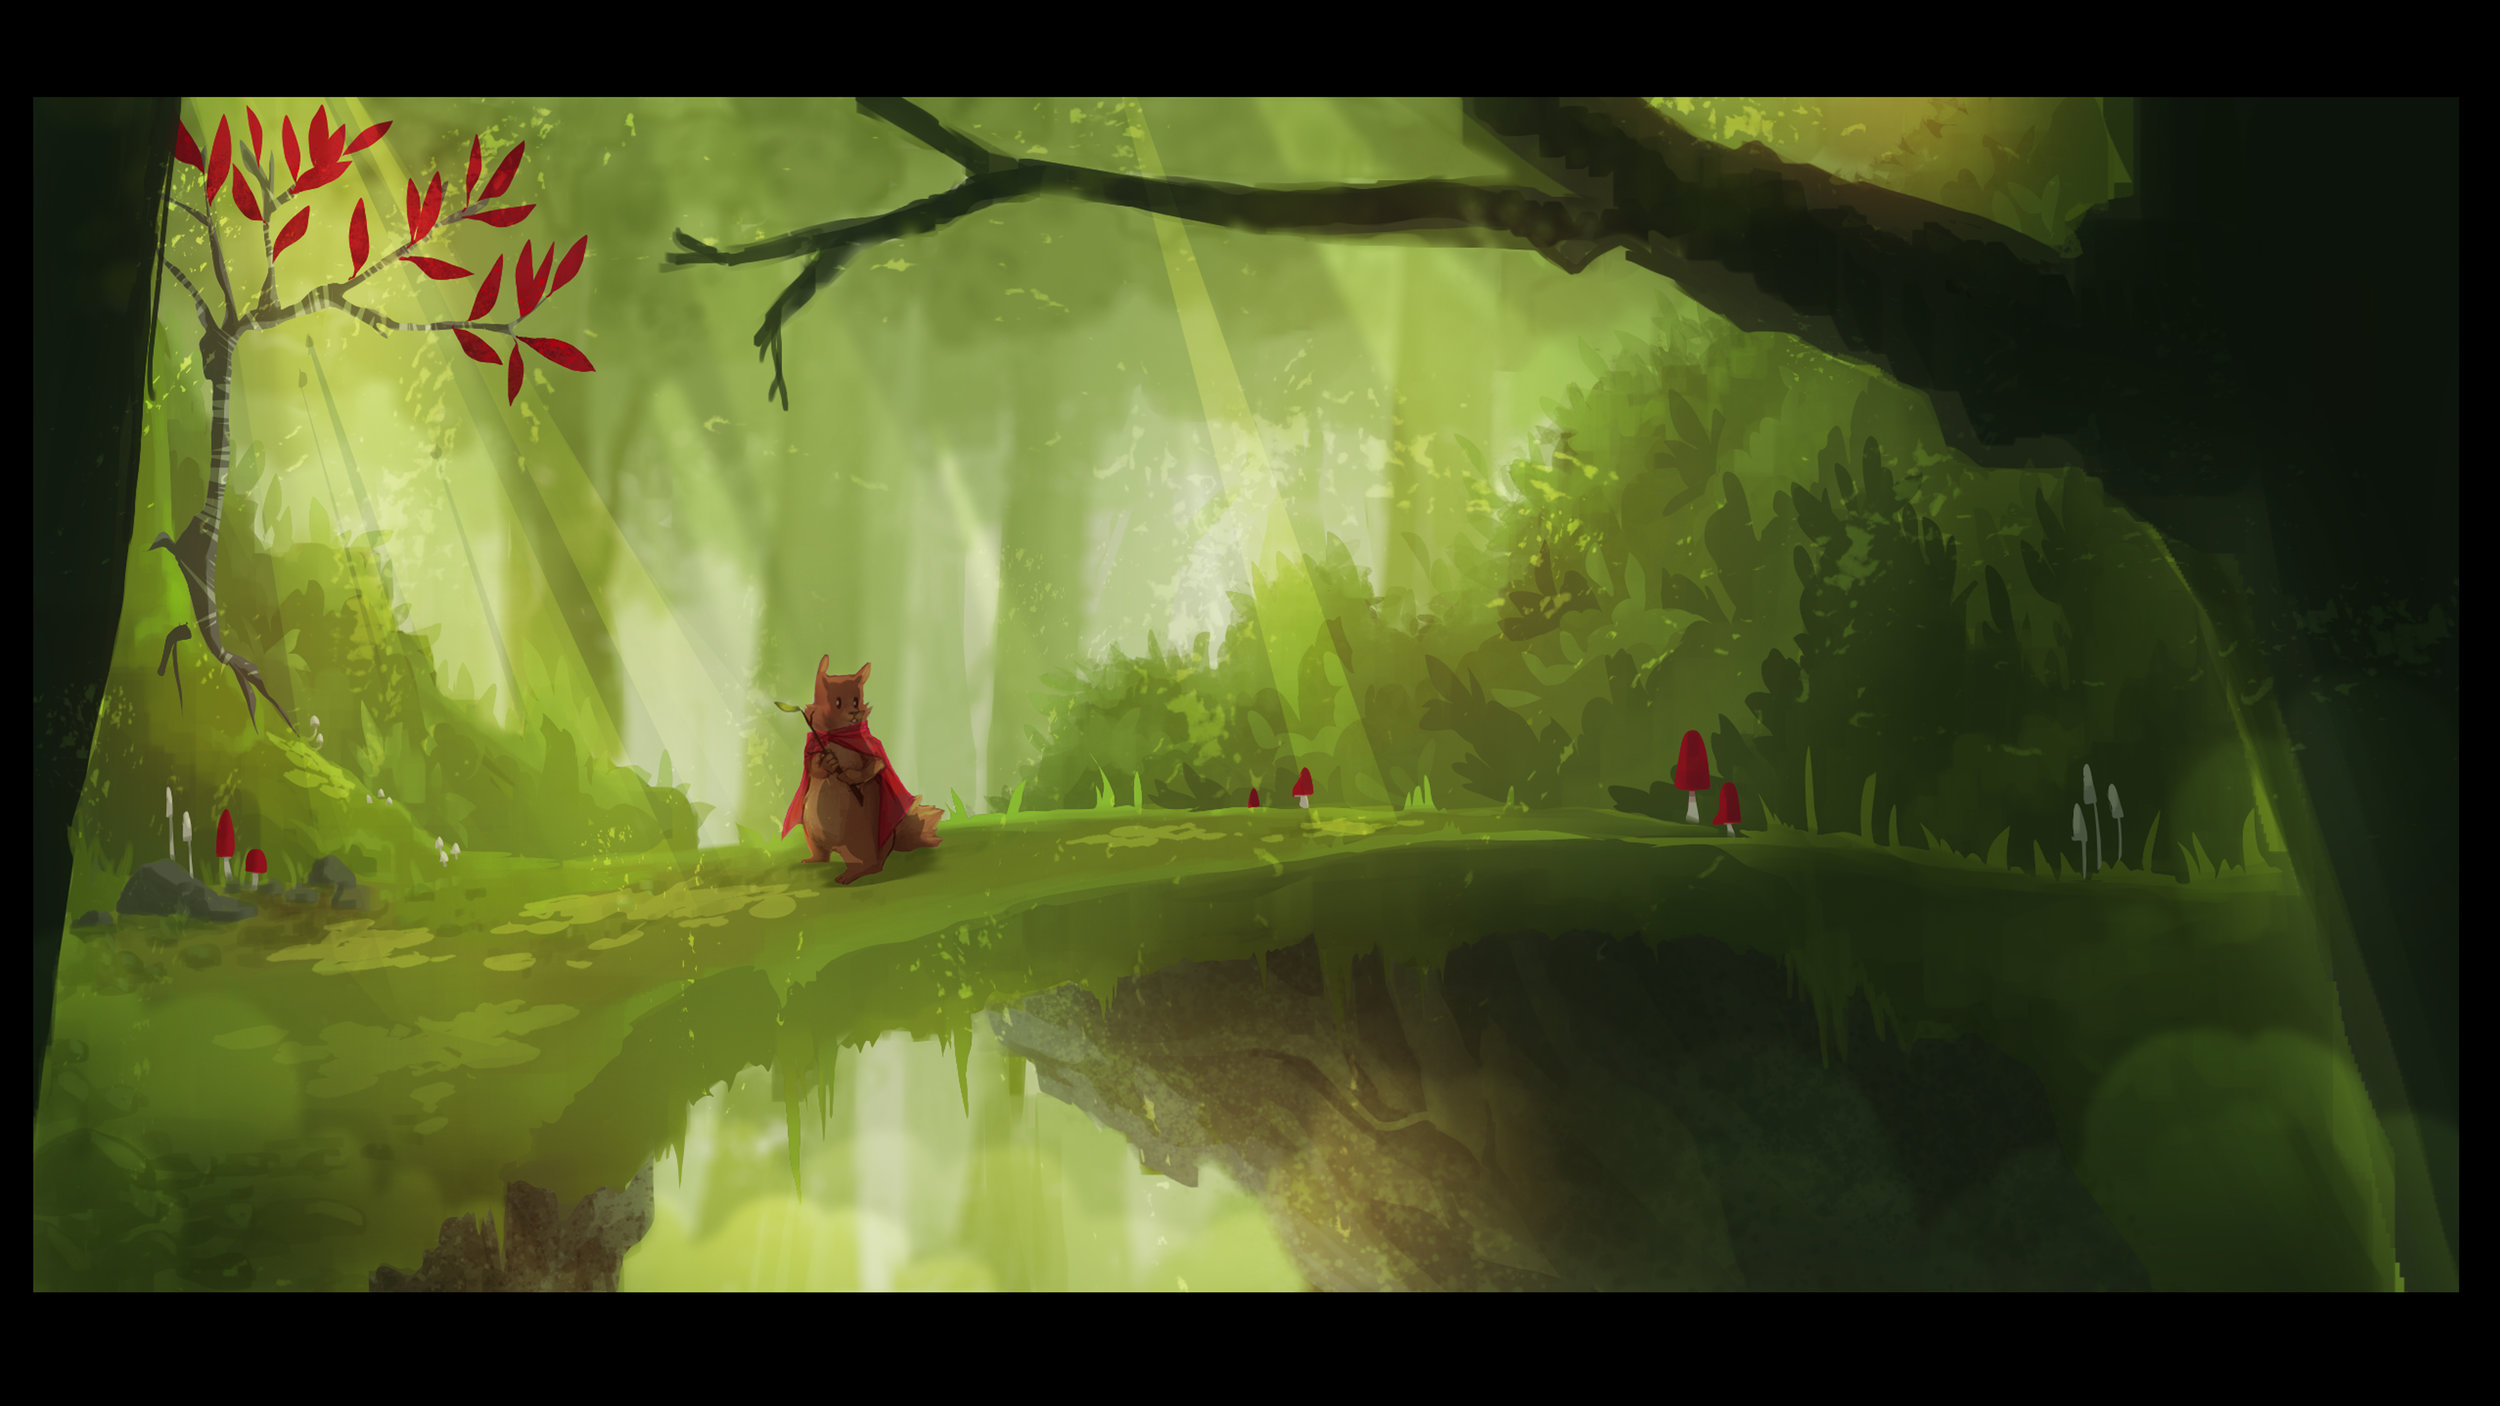 Environment mood painting for thesis project. Programs: Photoshop